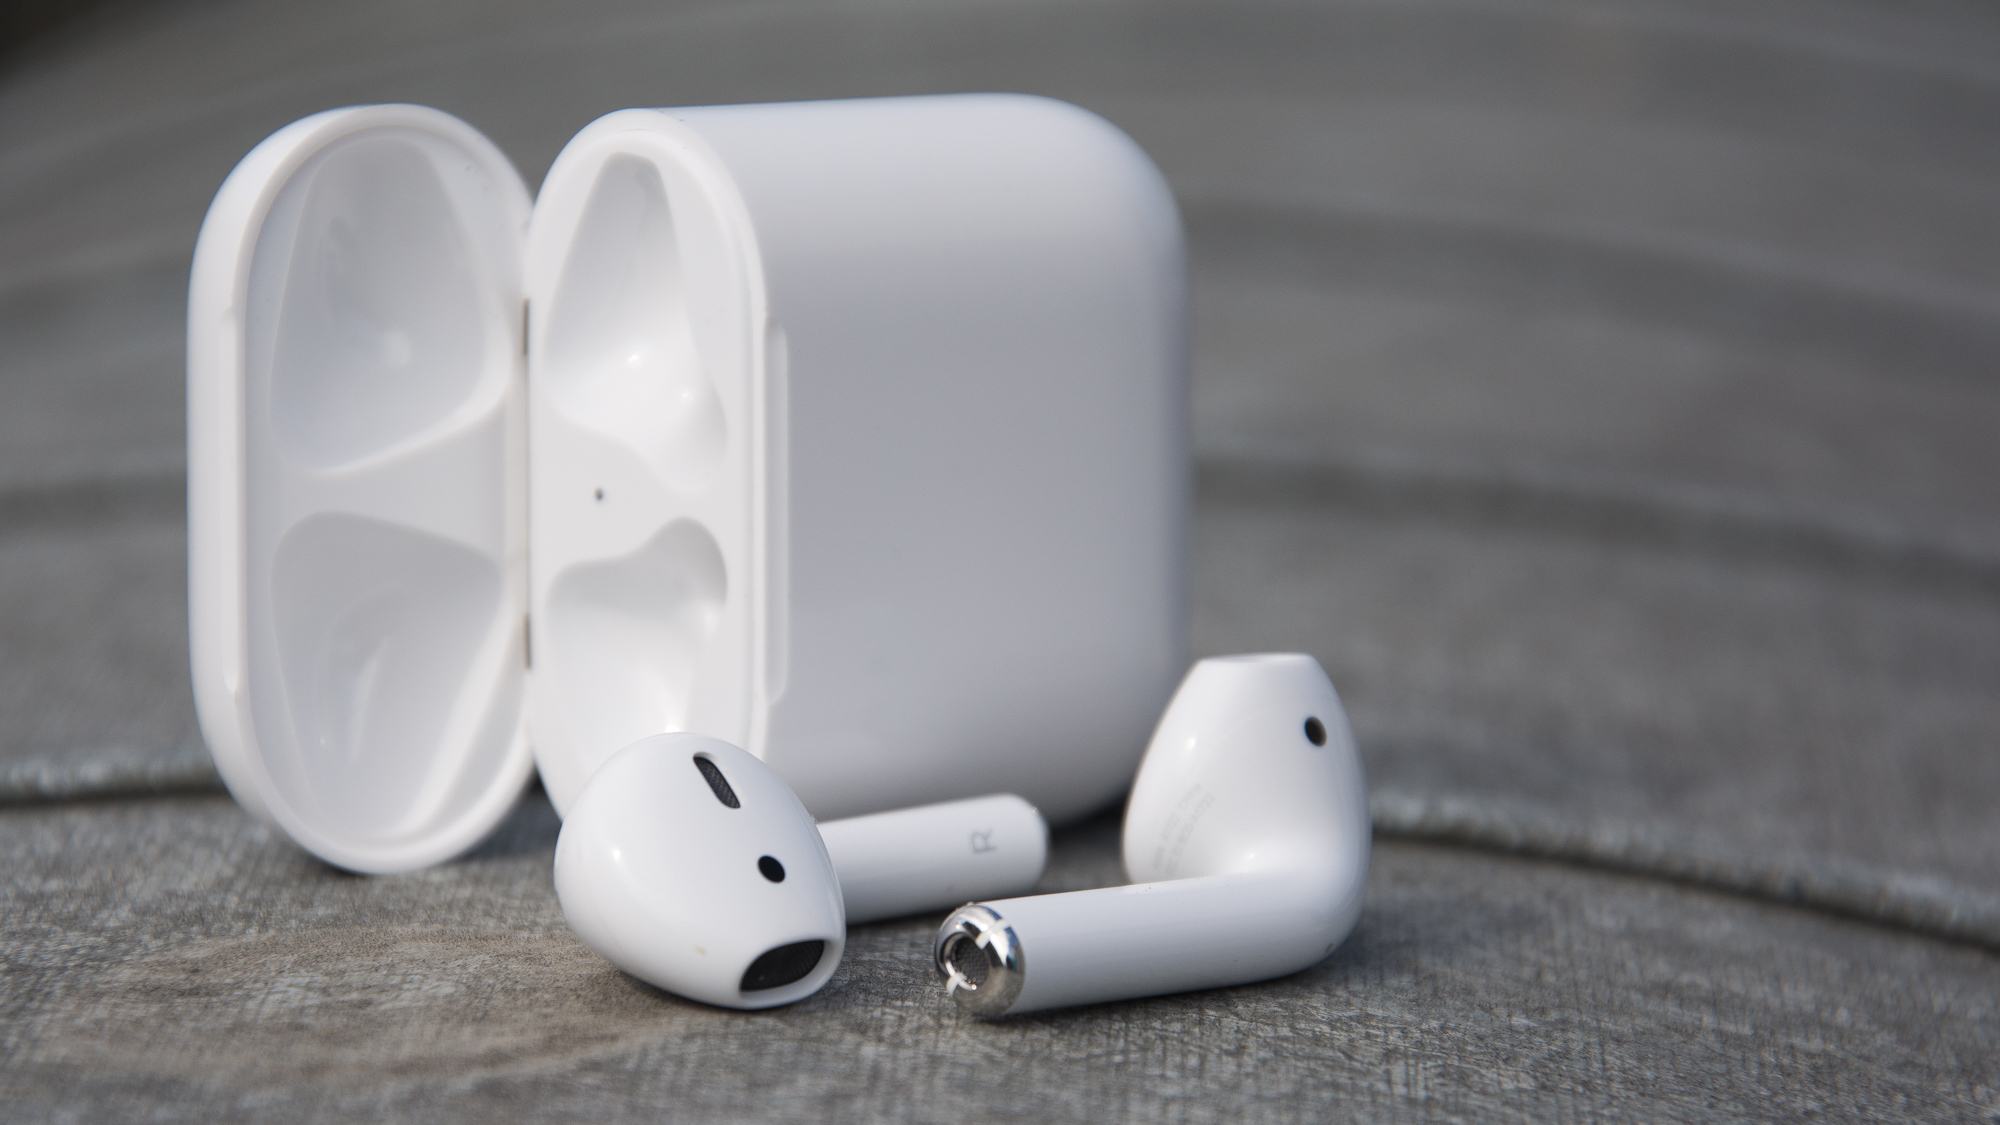 Apple AirPods are more than just a normal Earphones